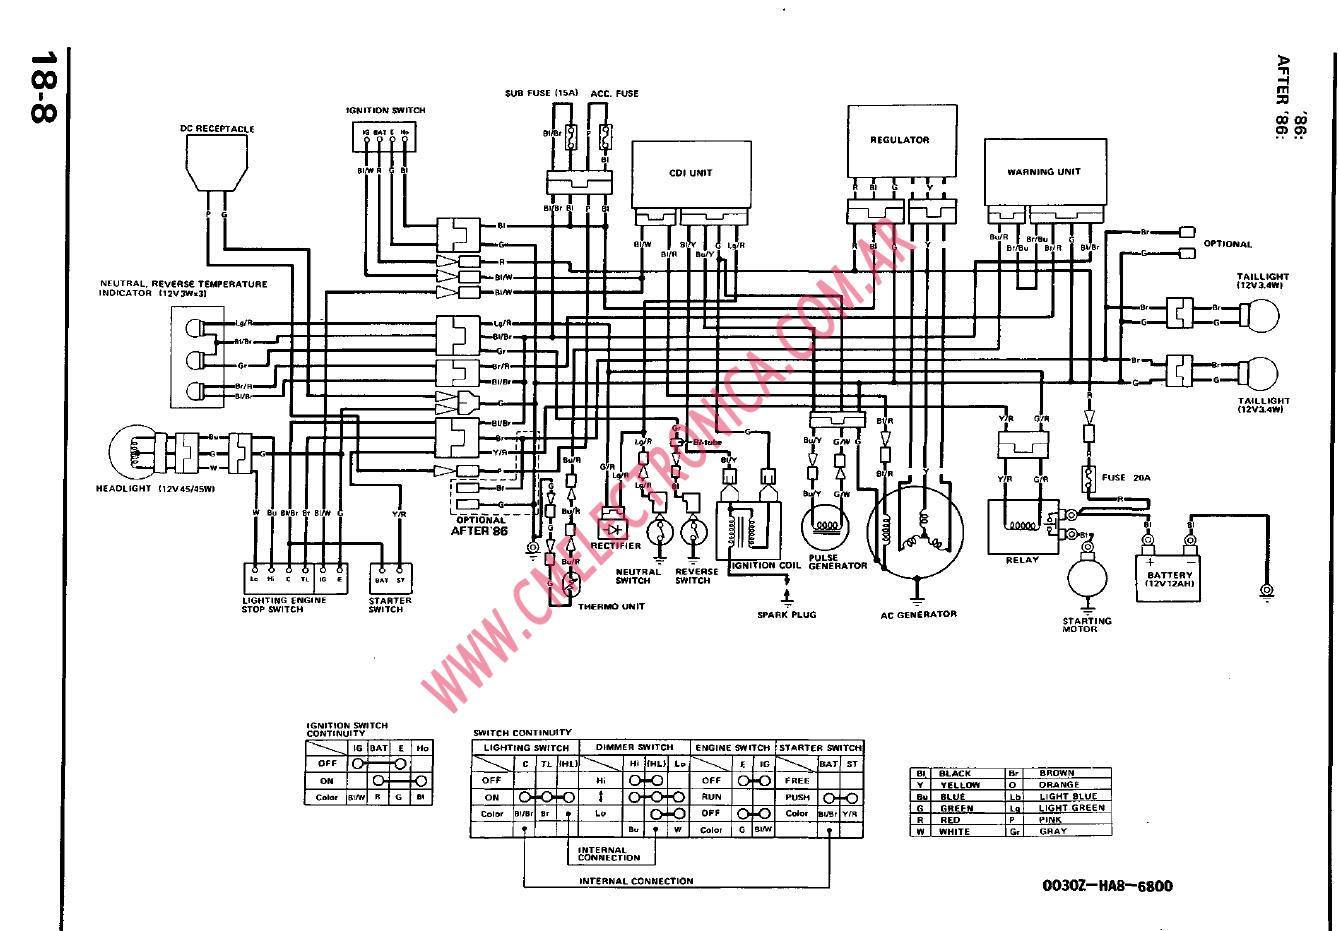 2006 crf450x wiring diagram 2006 relay diagram wiring